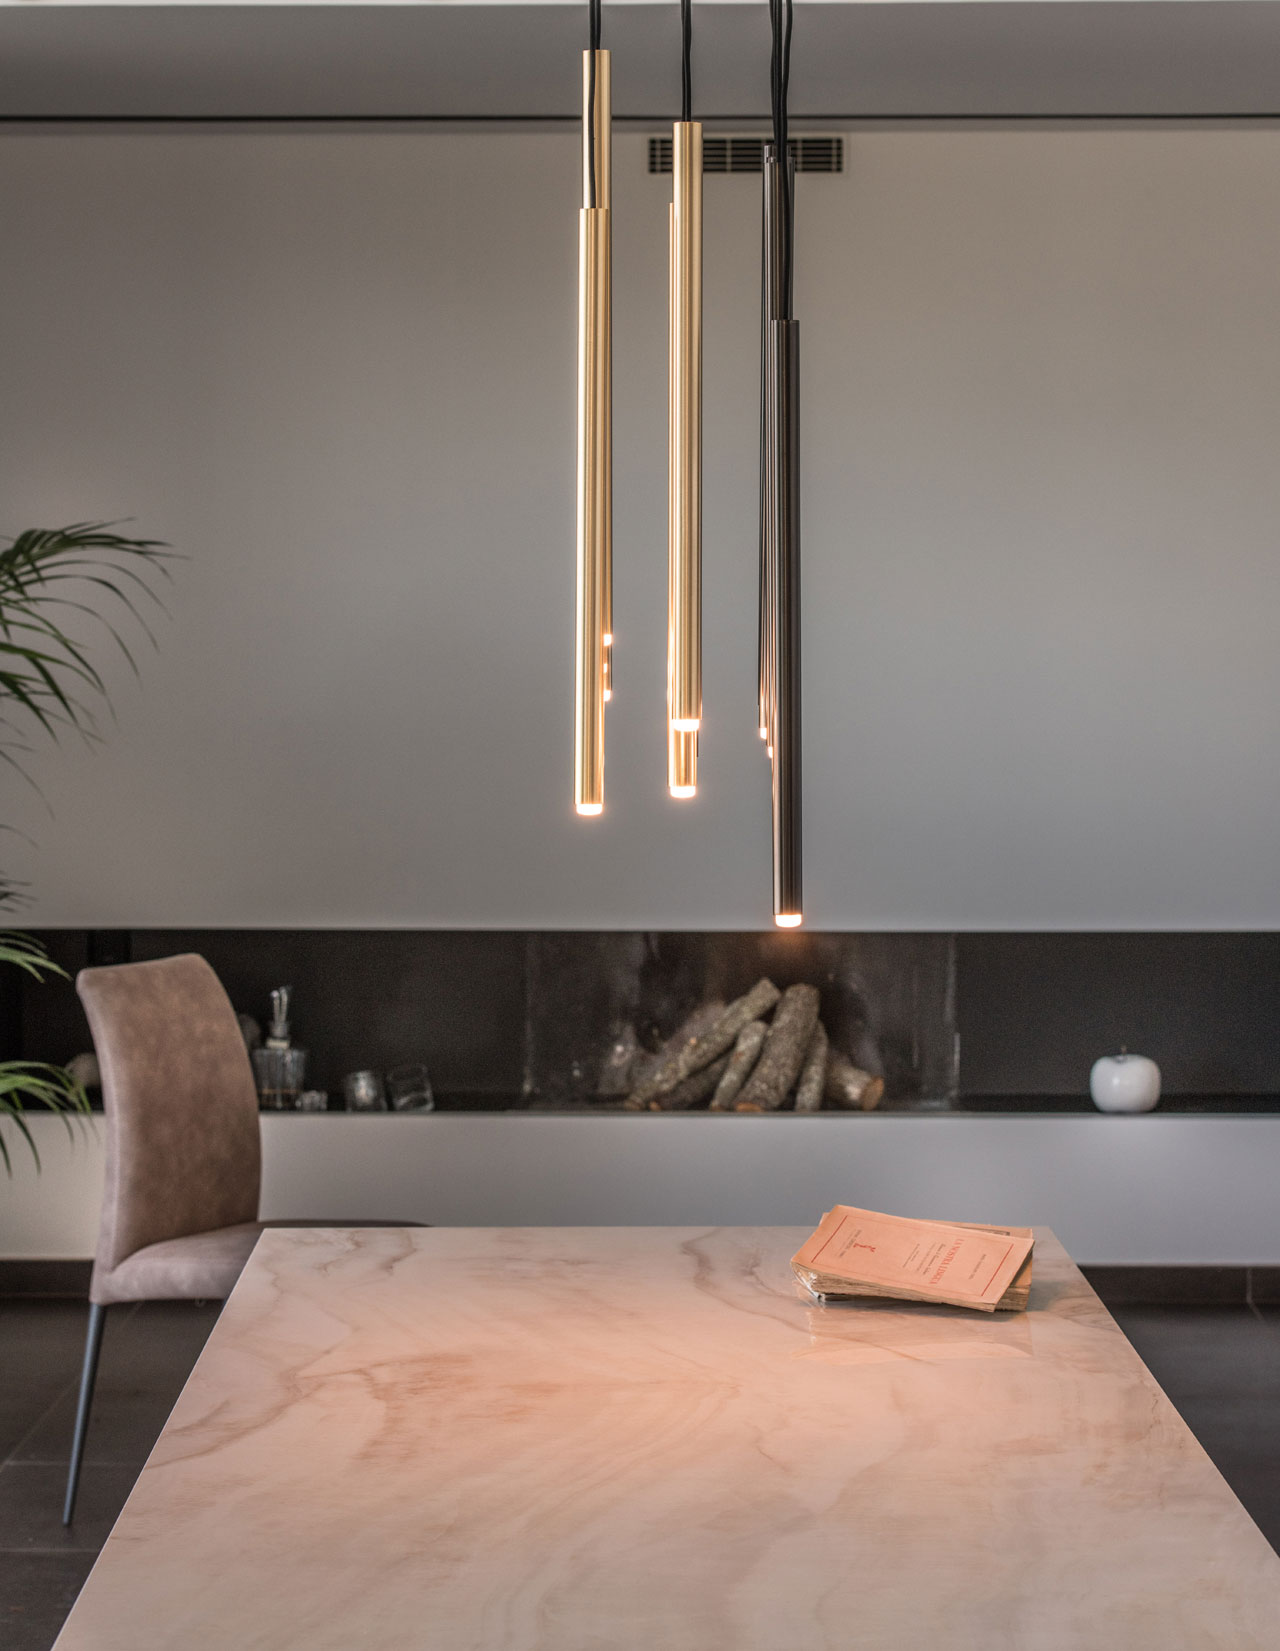 Stilo lamp, design Riflessi Lab 2019, Riflessi